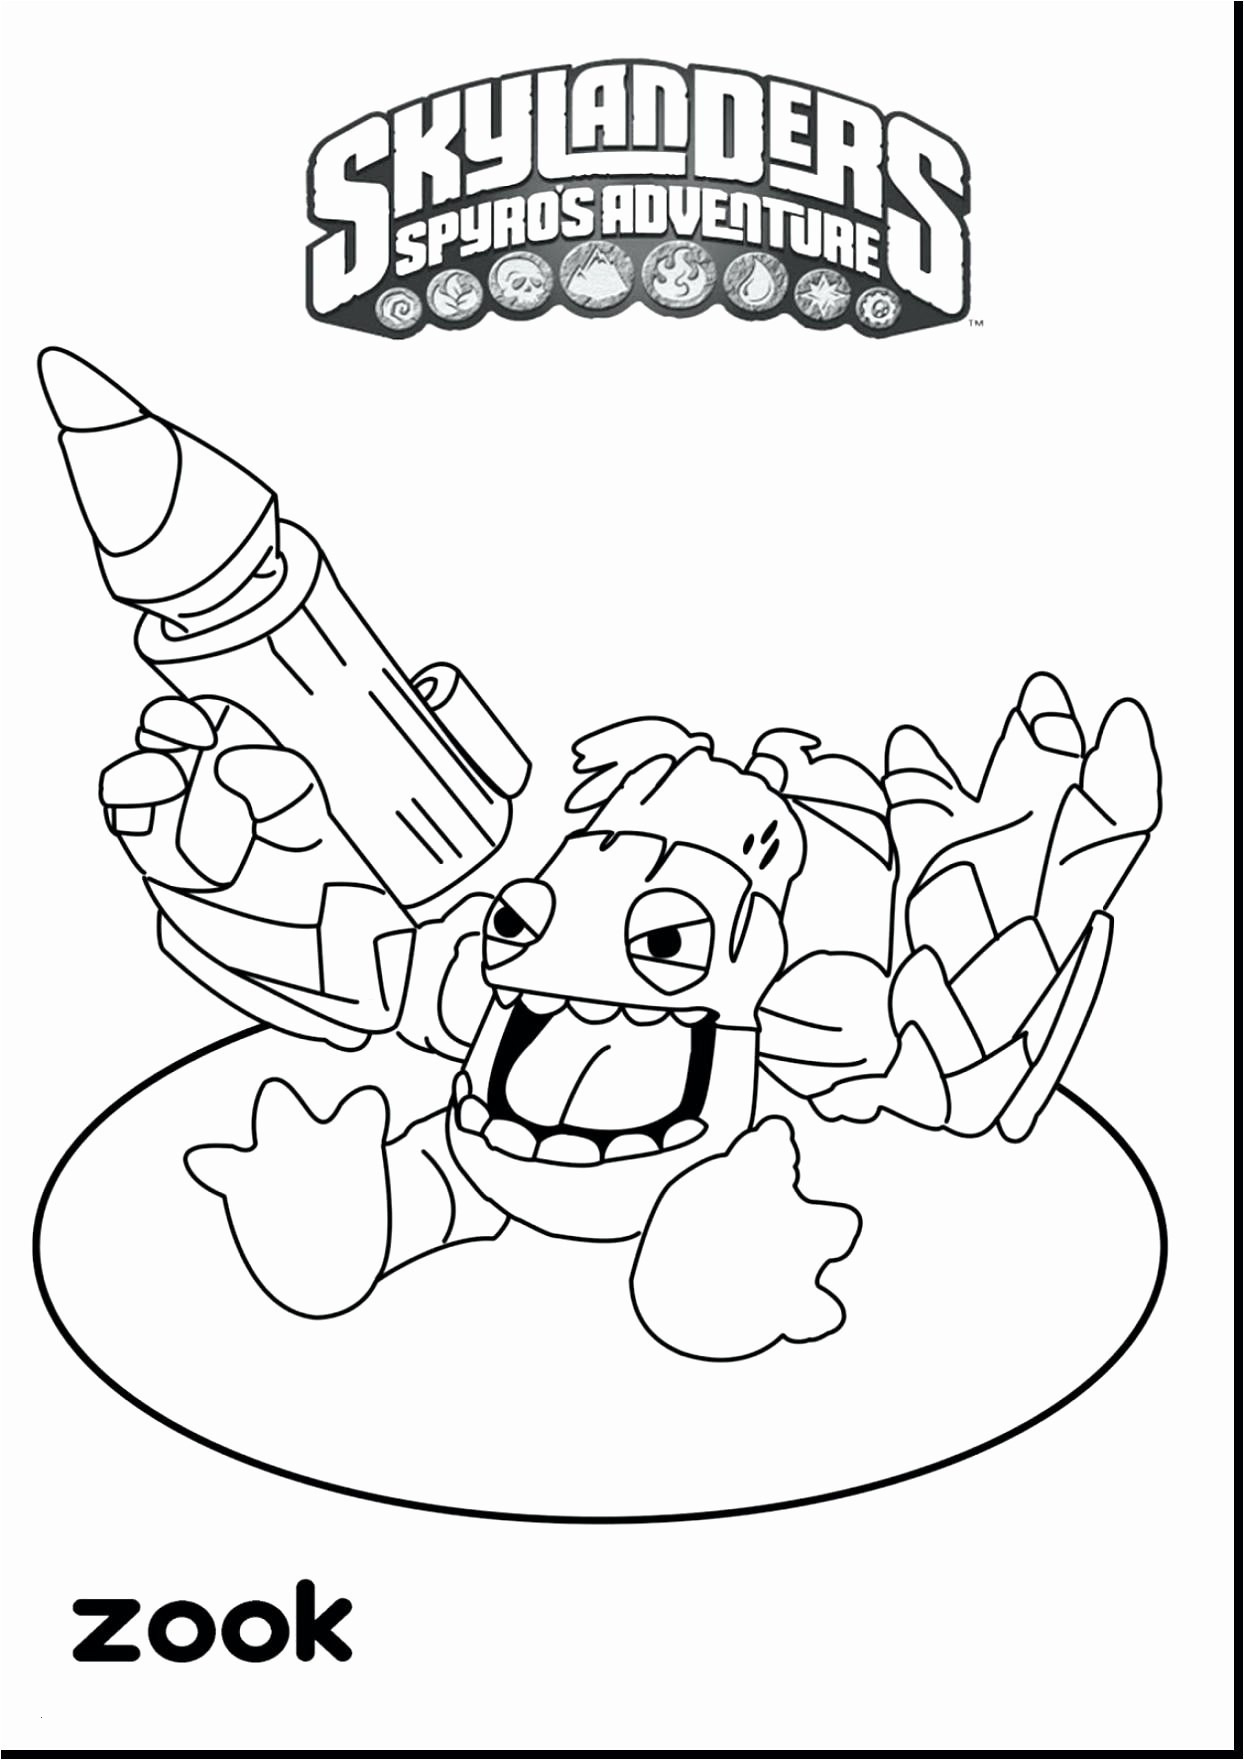 mothers day coloring book pages Download-Mothers Day Coloring Pages Free 20-r